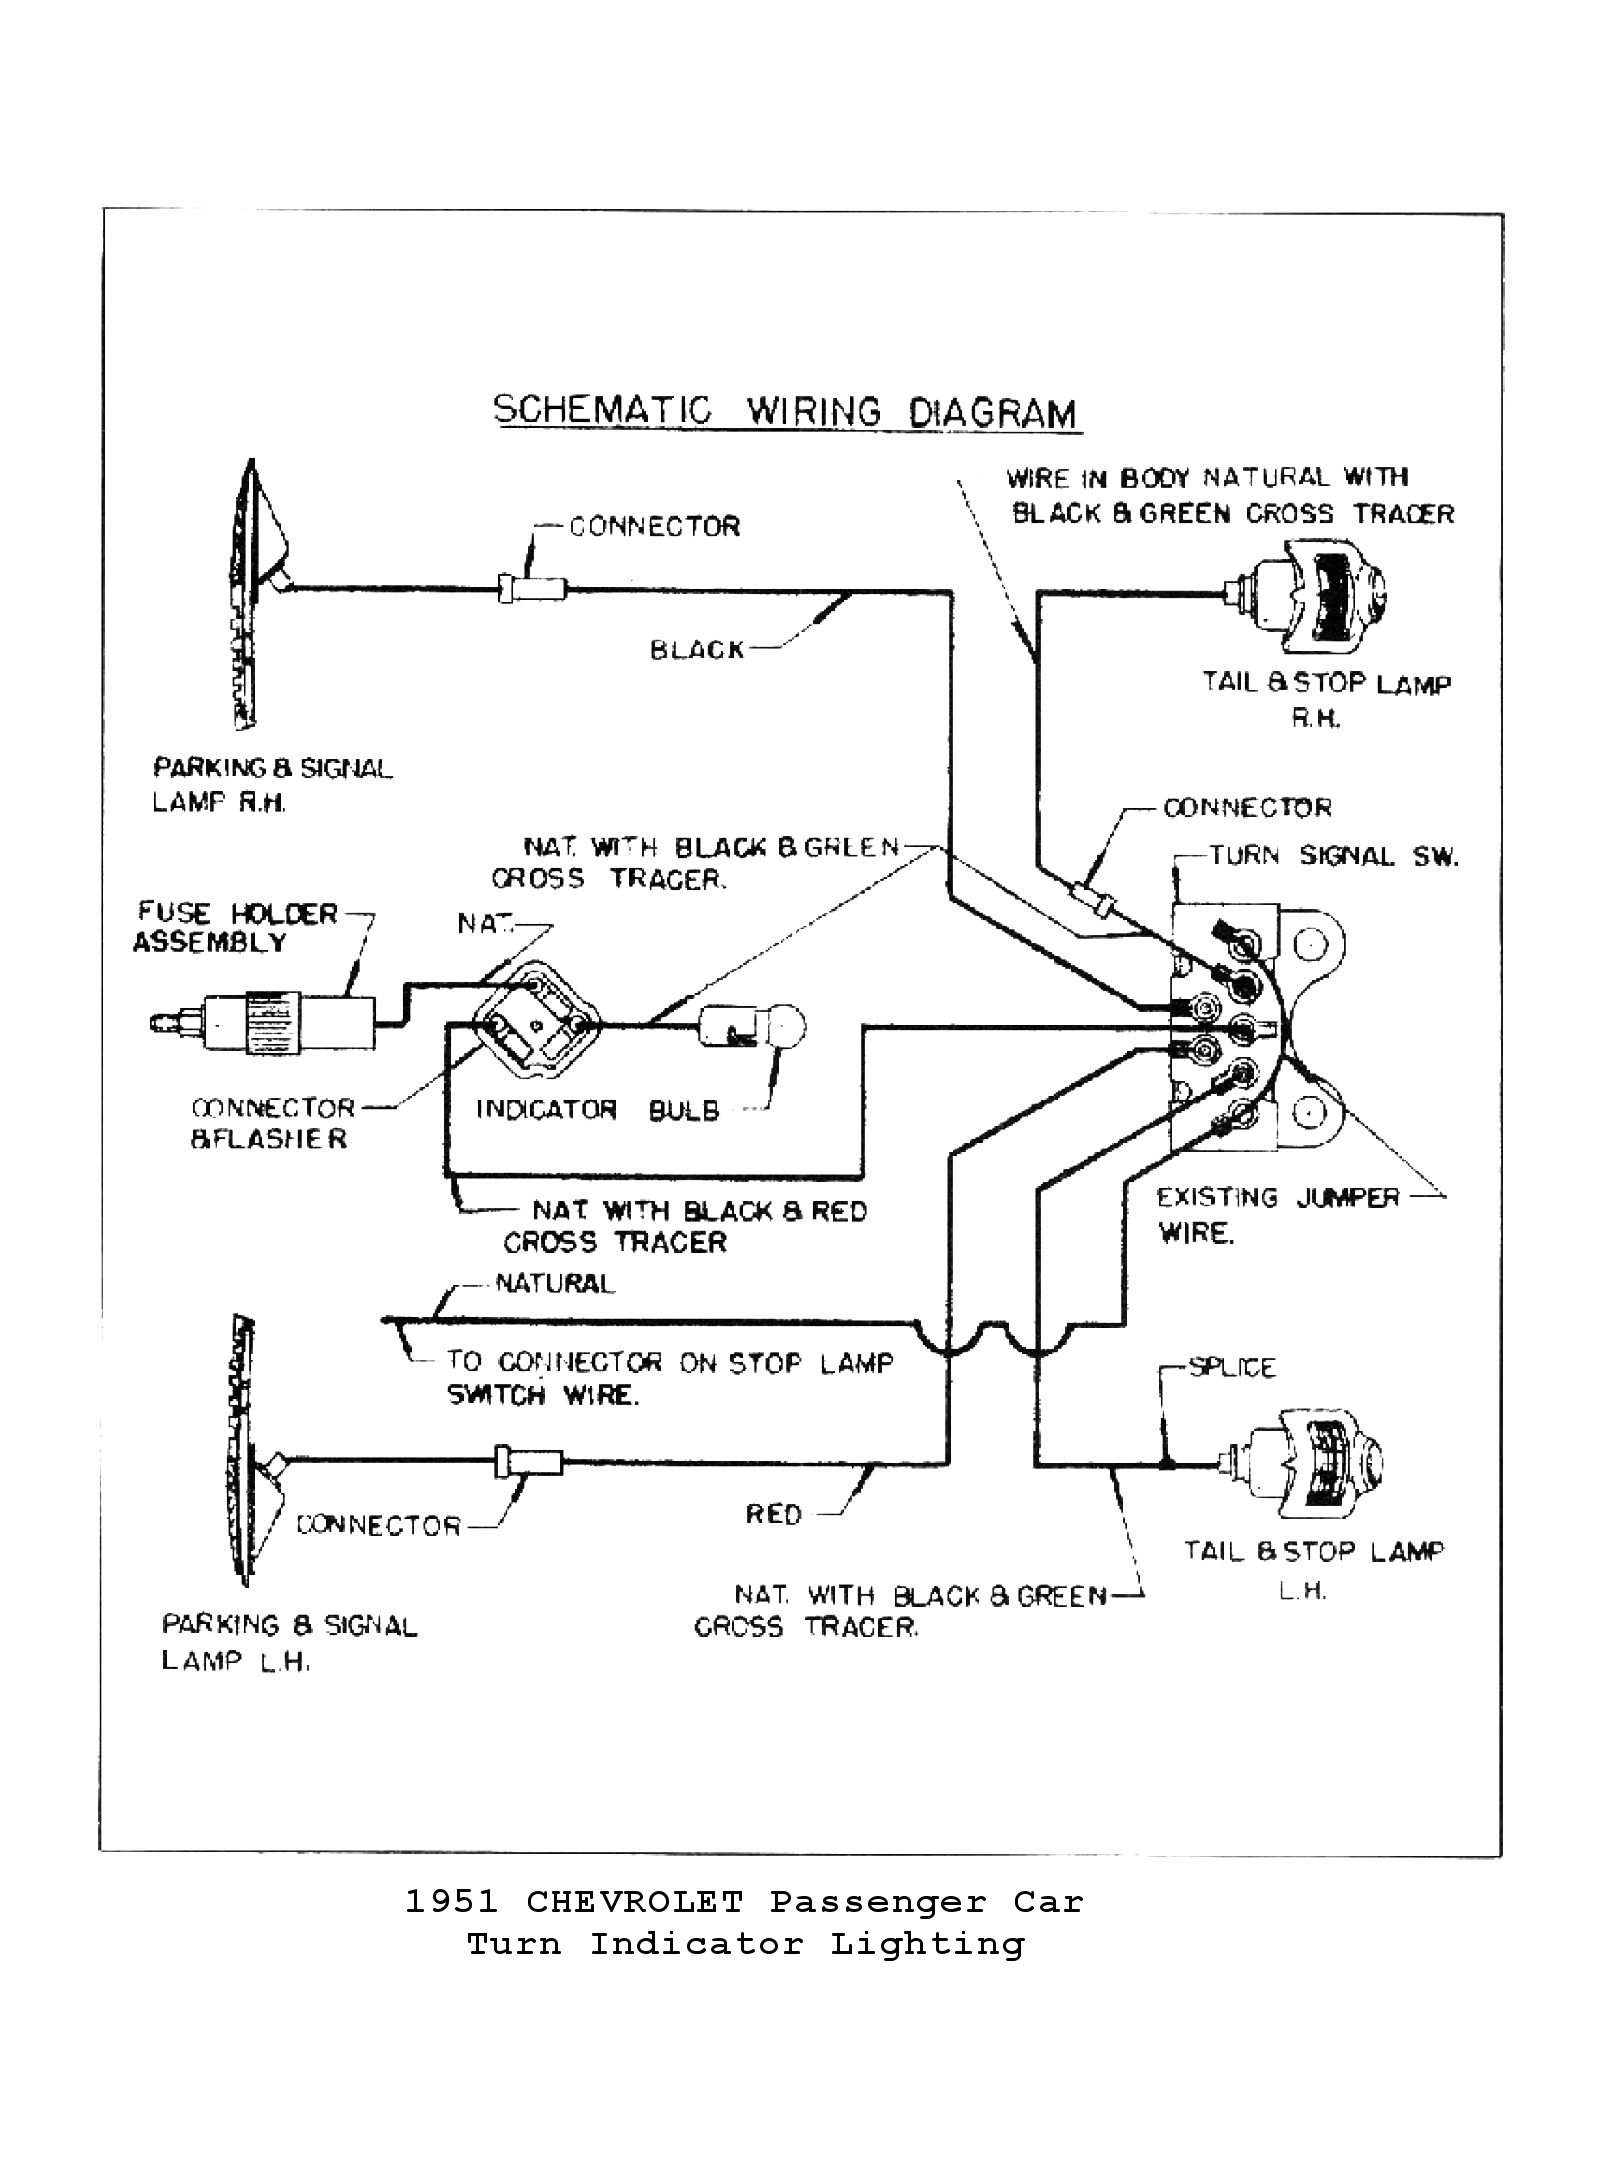 chevy wiring diagrams gm ignition switch wiring diagram wiring diagram for a starter for a 1993